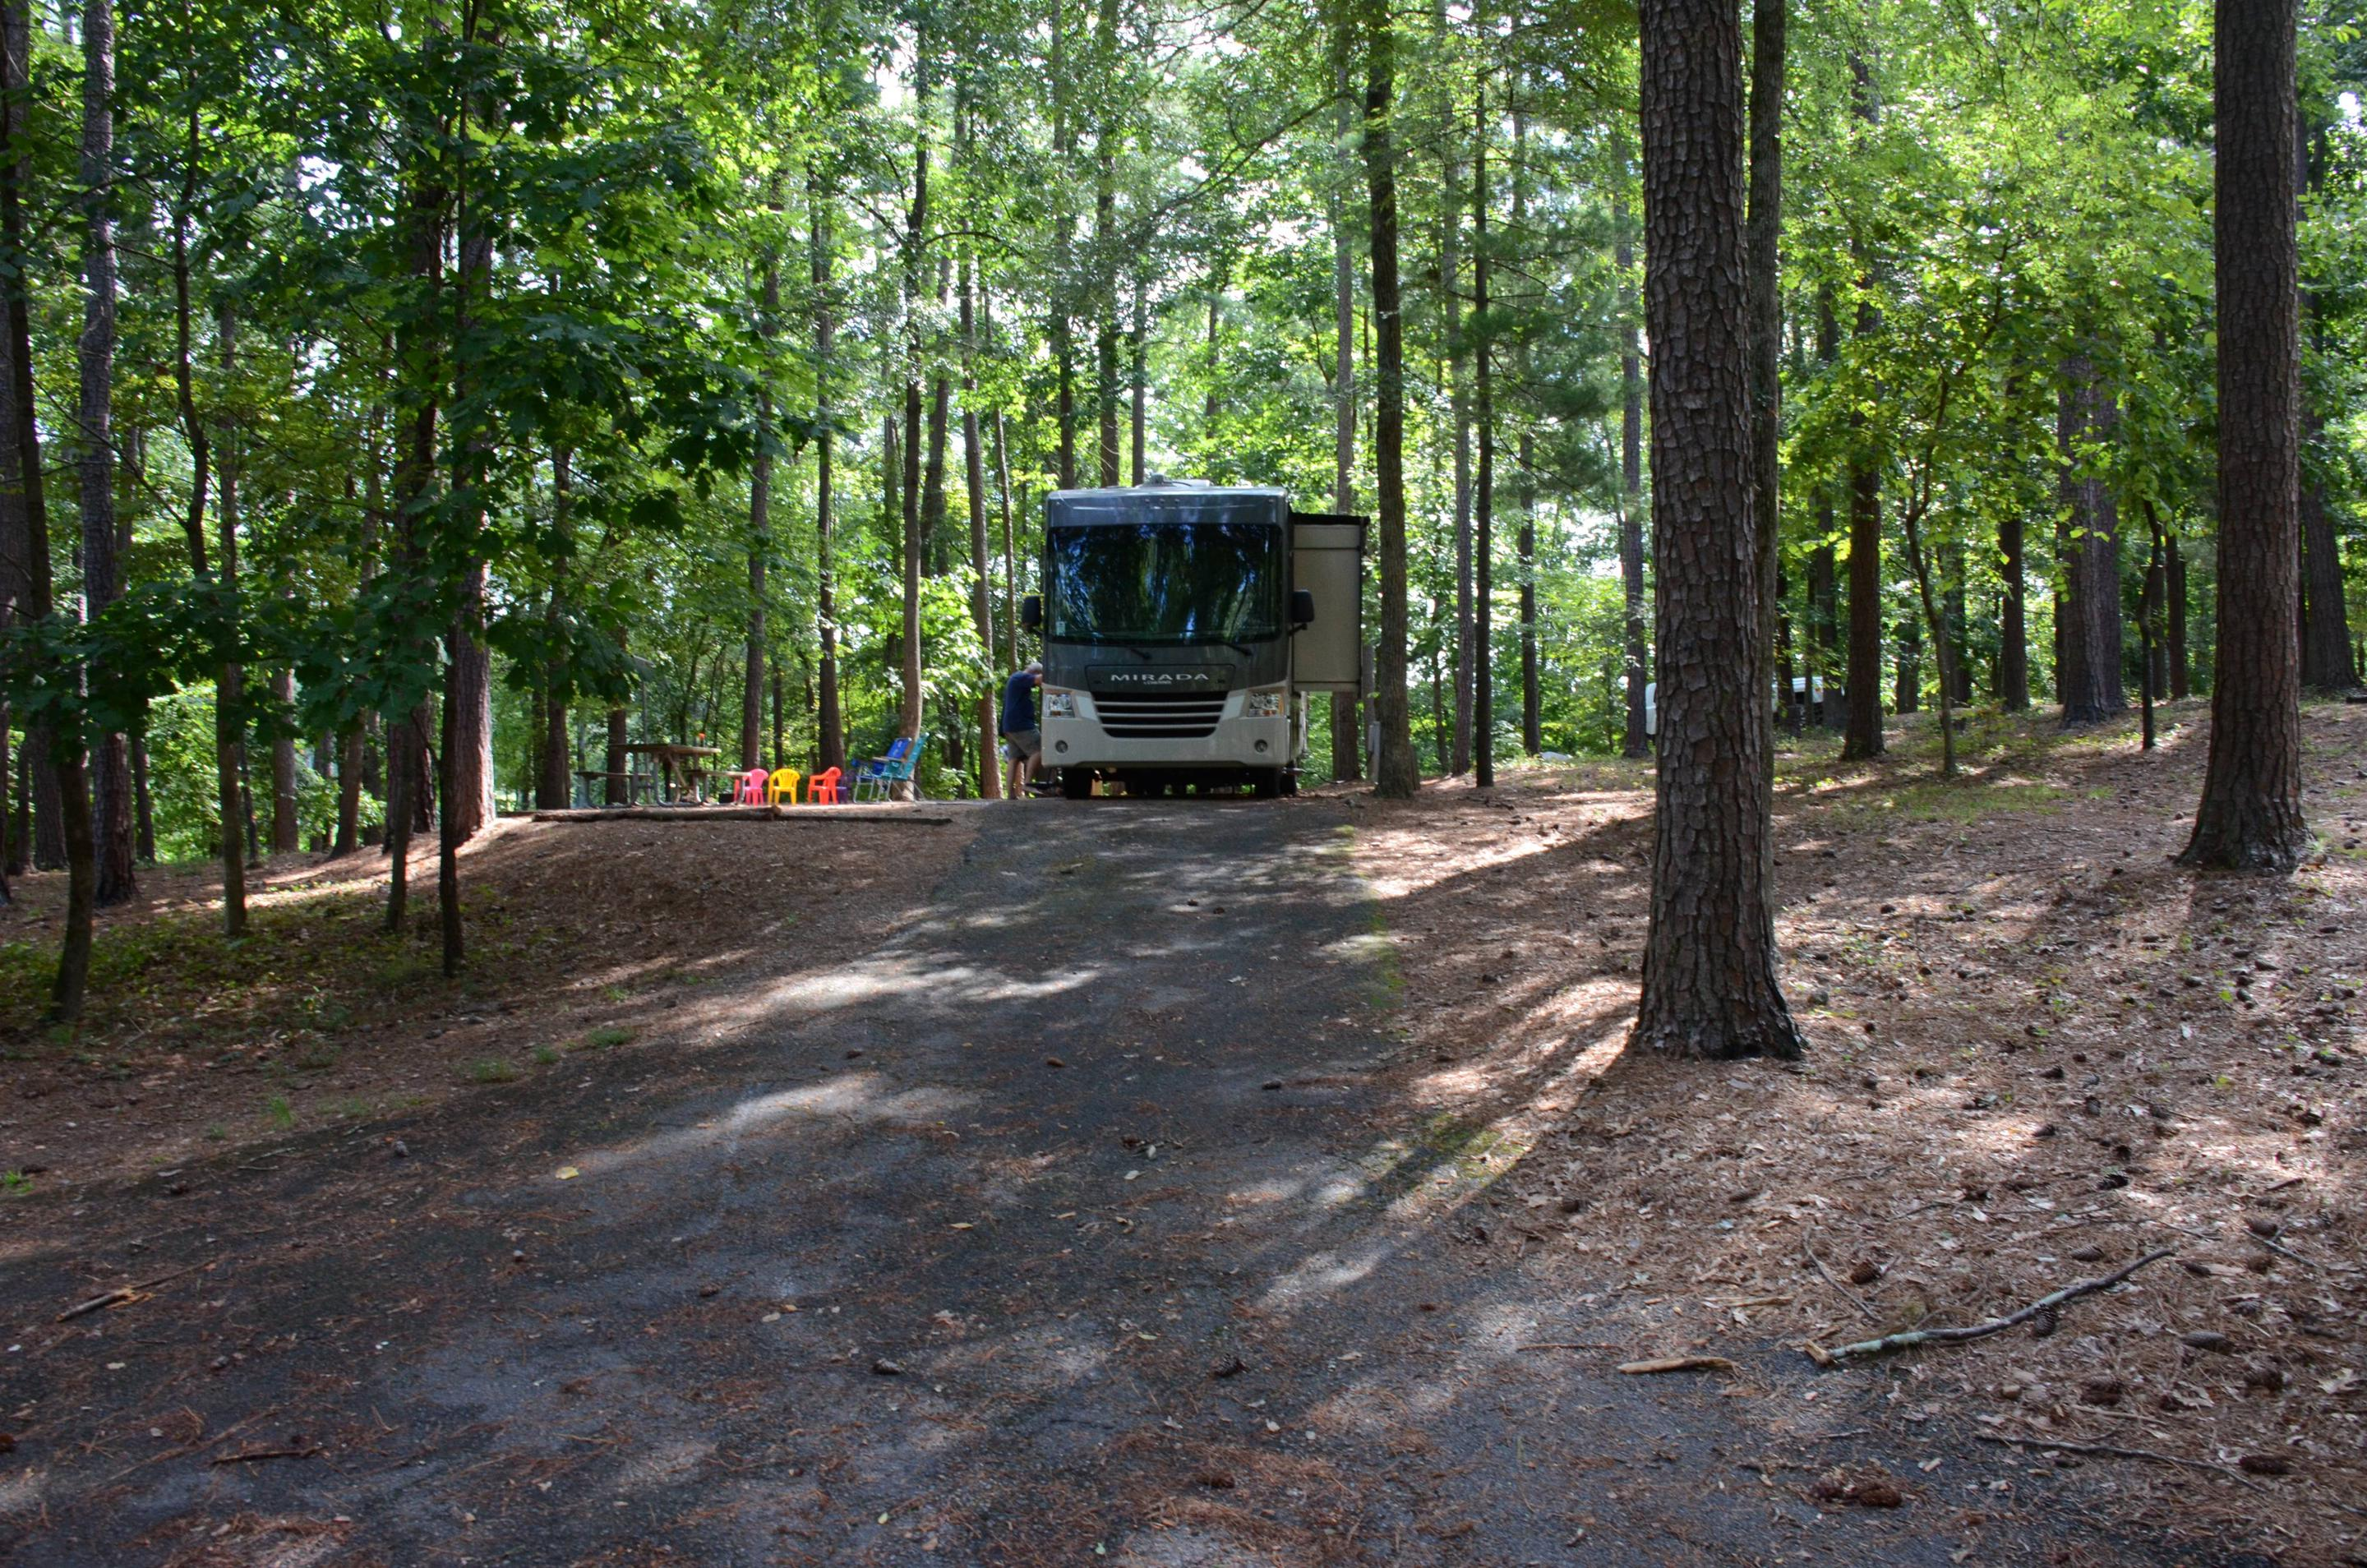 Pull-thru exit, driveway slope, utilities-side clearance.McKinney Campground, campsite 19.